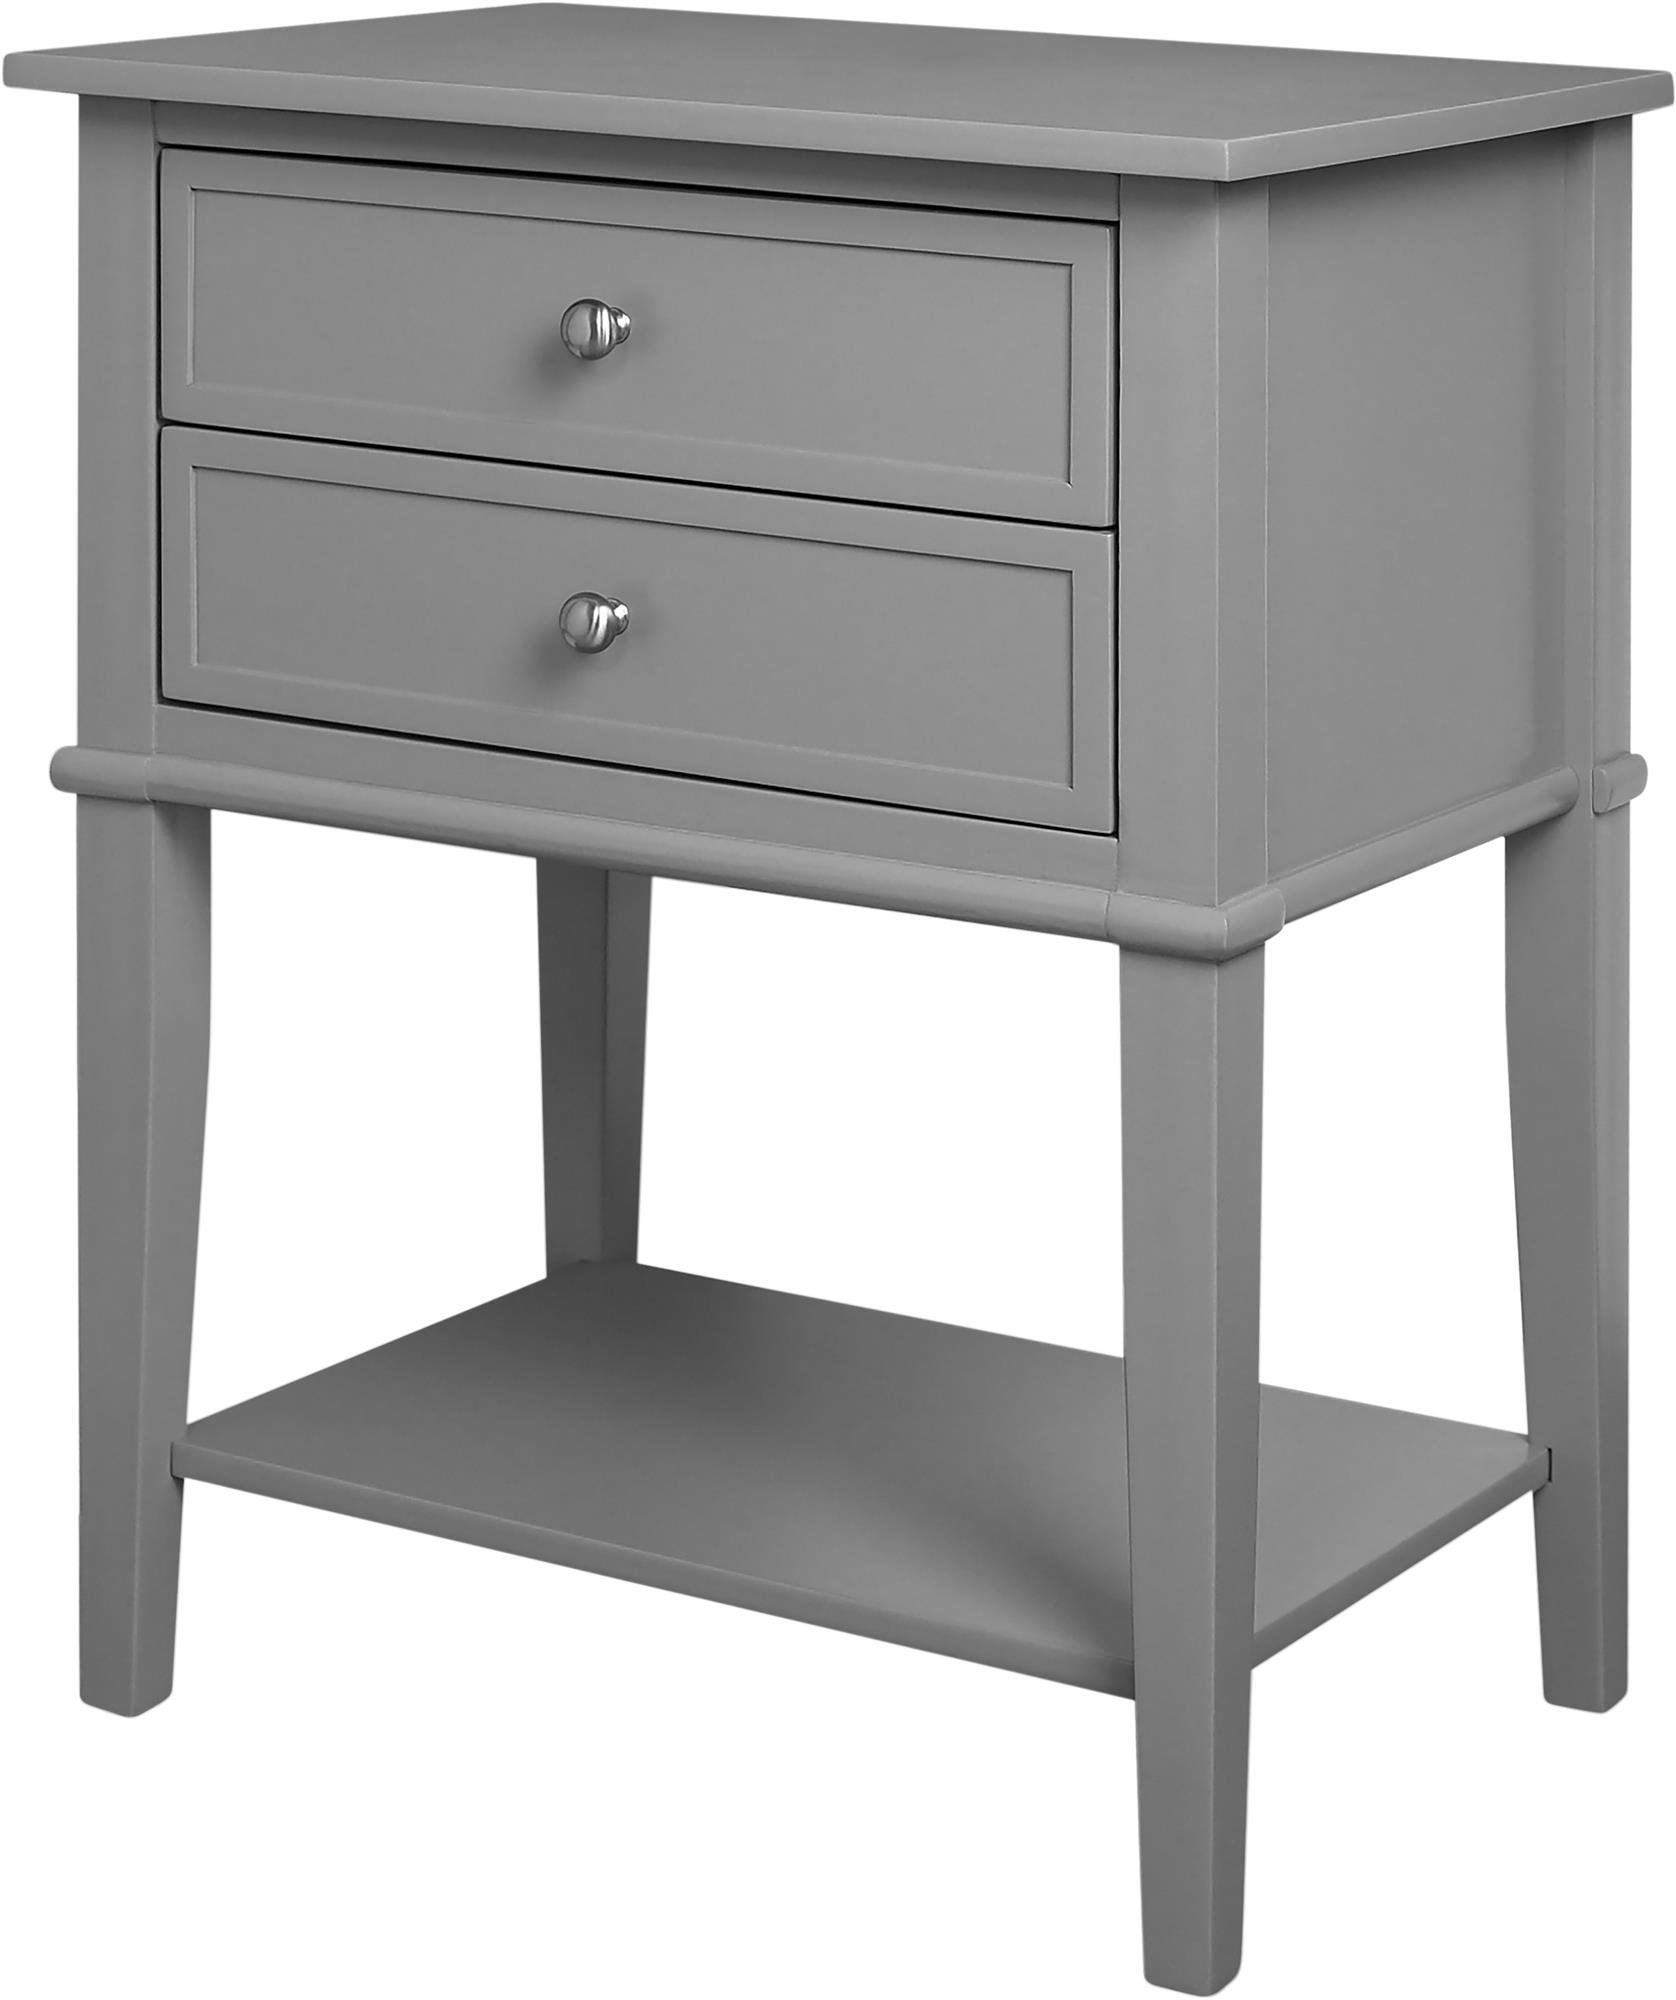 accent table with drawer fjnahl winsome squamish espresso finish ameriwood home franklin drawers gray small silver end cherry wood glass coffee urn lamp green console white